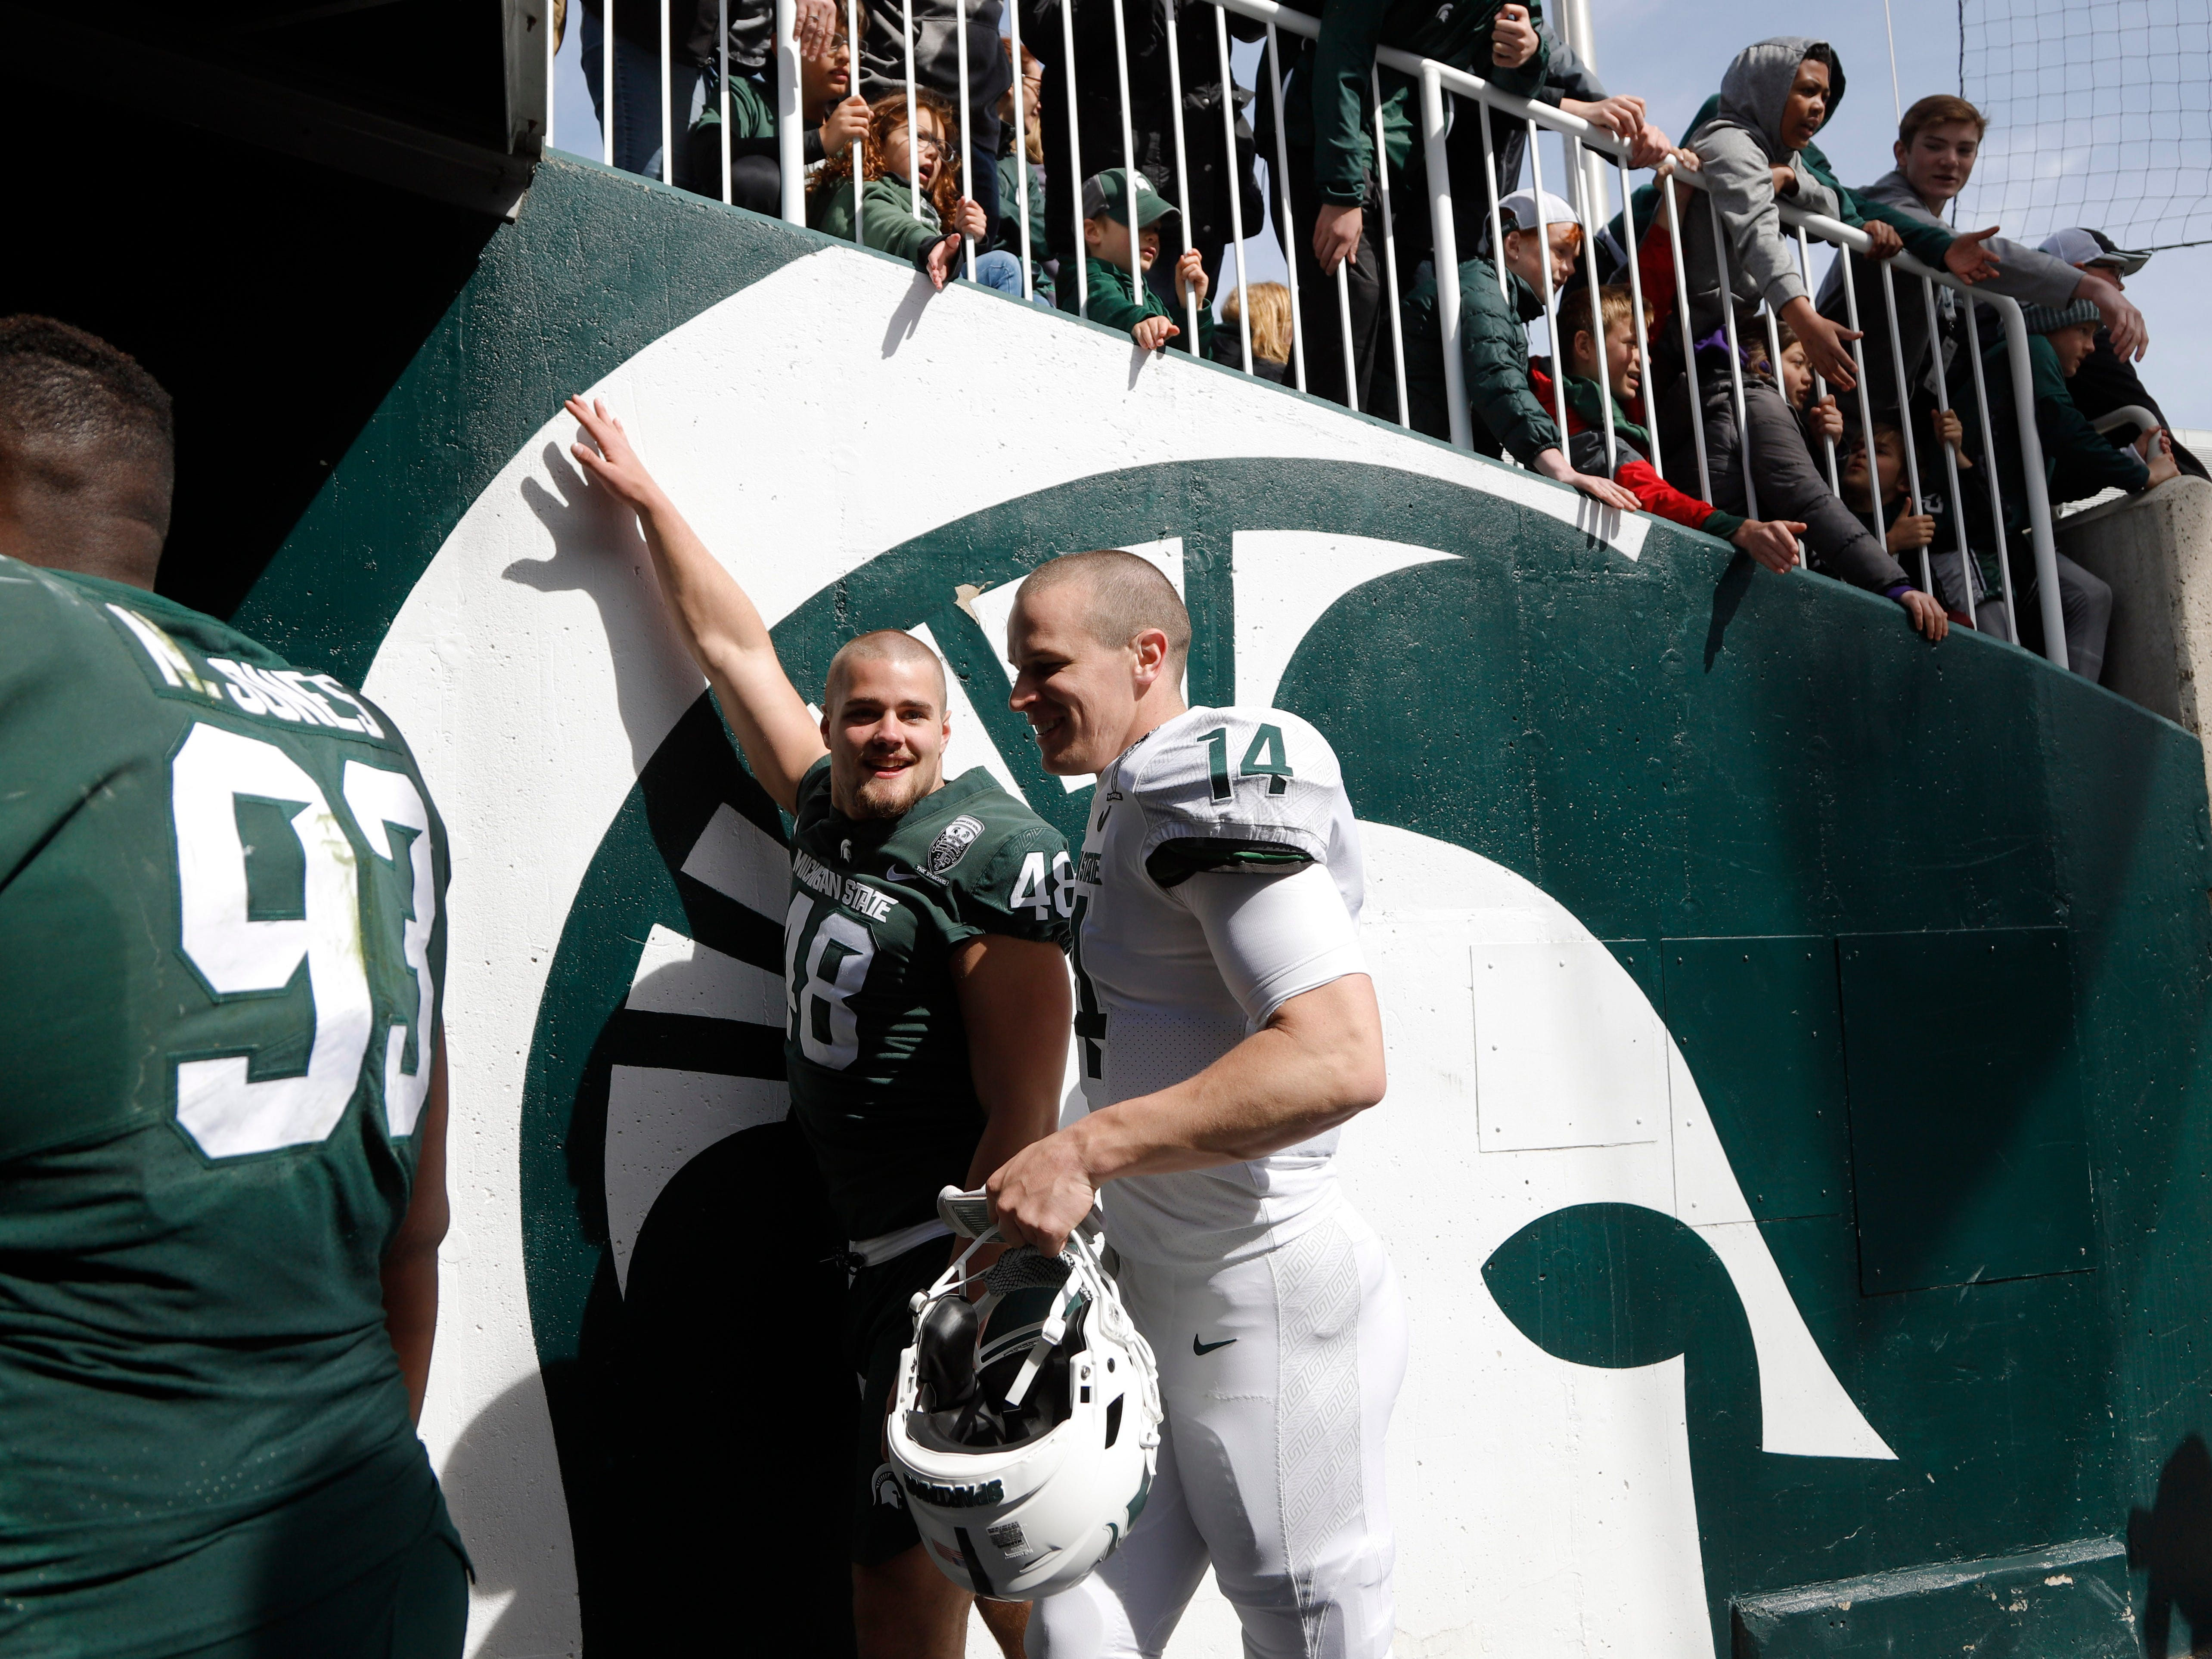 Michigan State quarterback Brian Lewerke, right, and defensive end Kenny Willekes (48) leave the field after an NCAA college football spring scrimmage game, Saturday, April 13, 2019, in East Lansing, Mich. (AP Photo/Al Goldis)